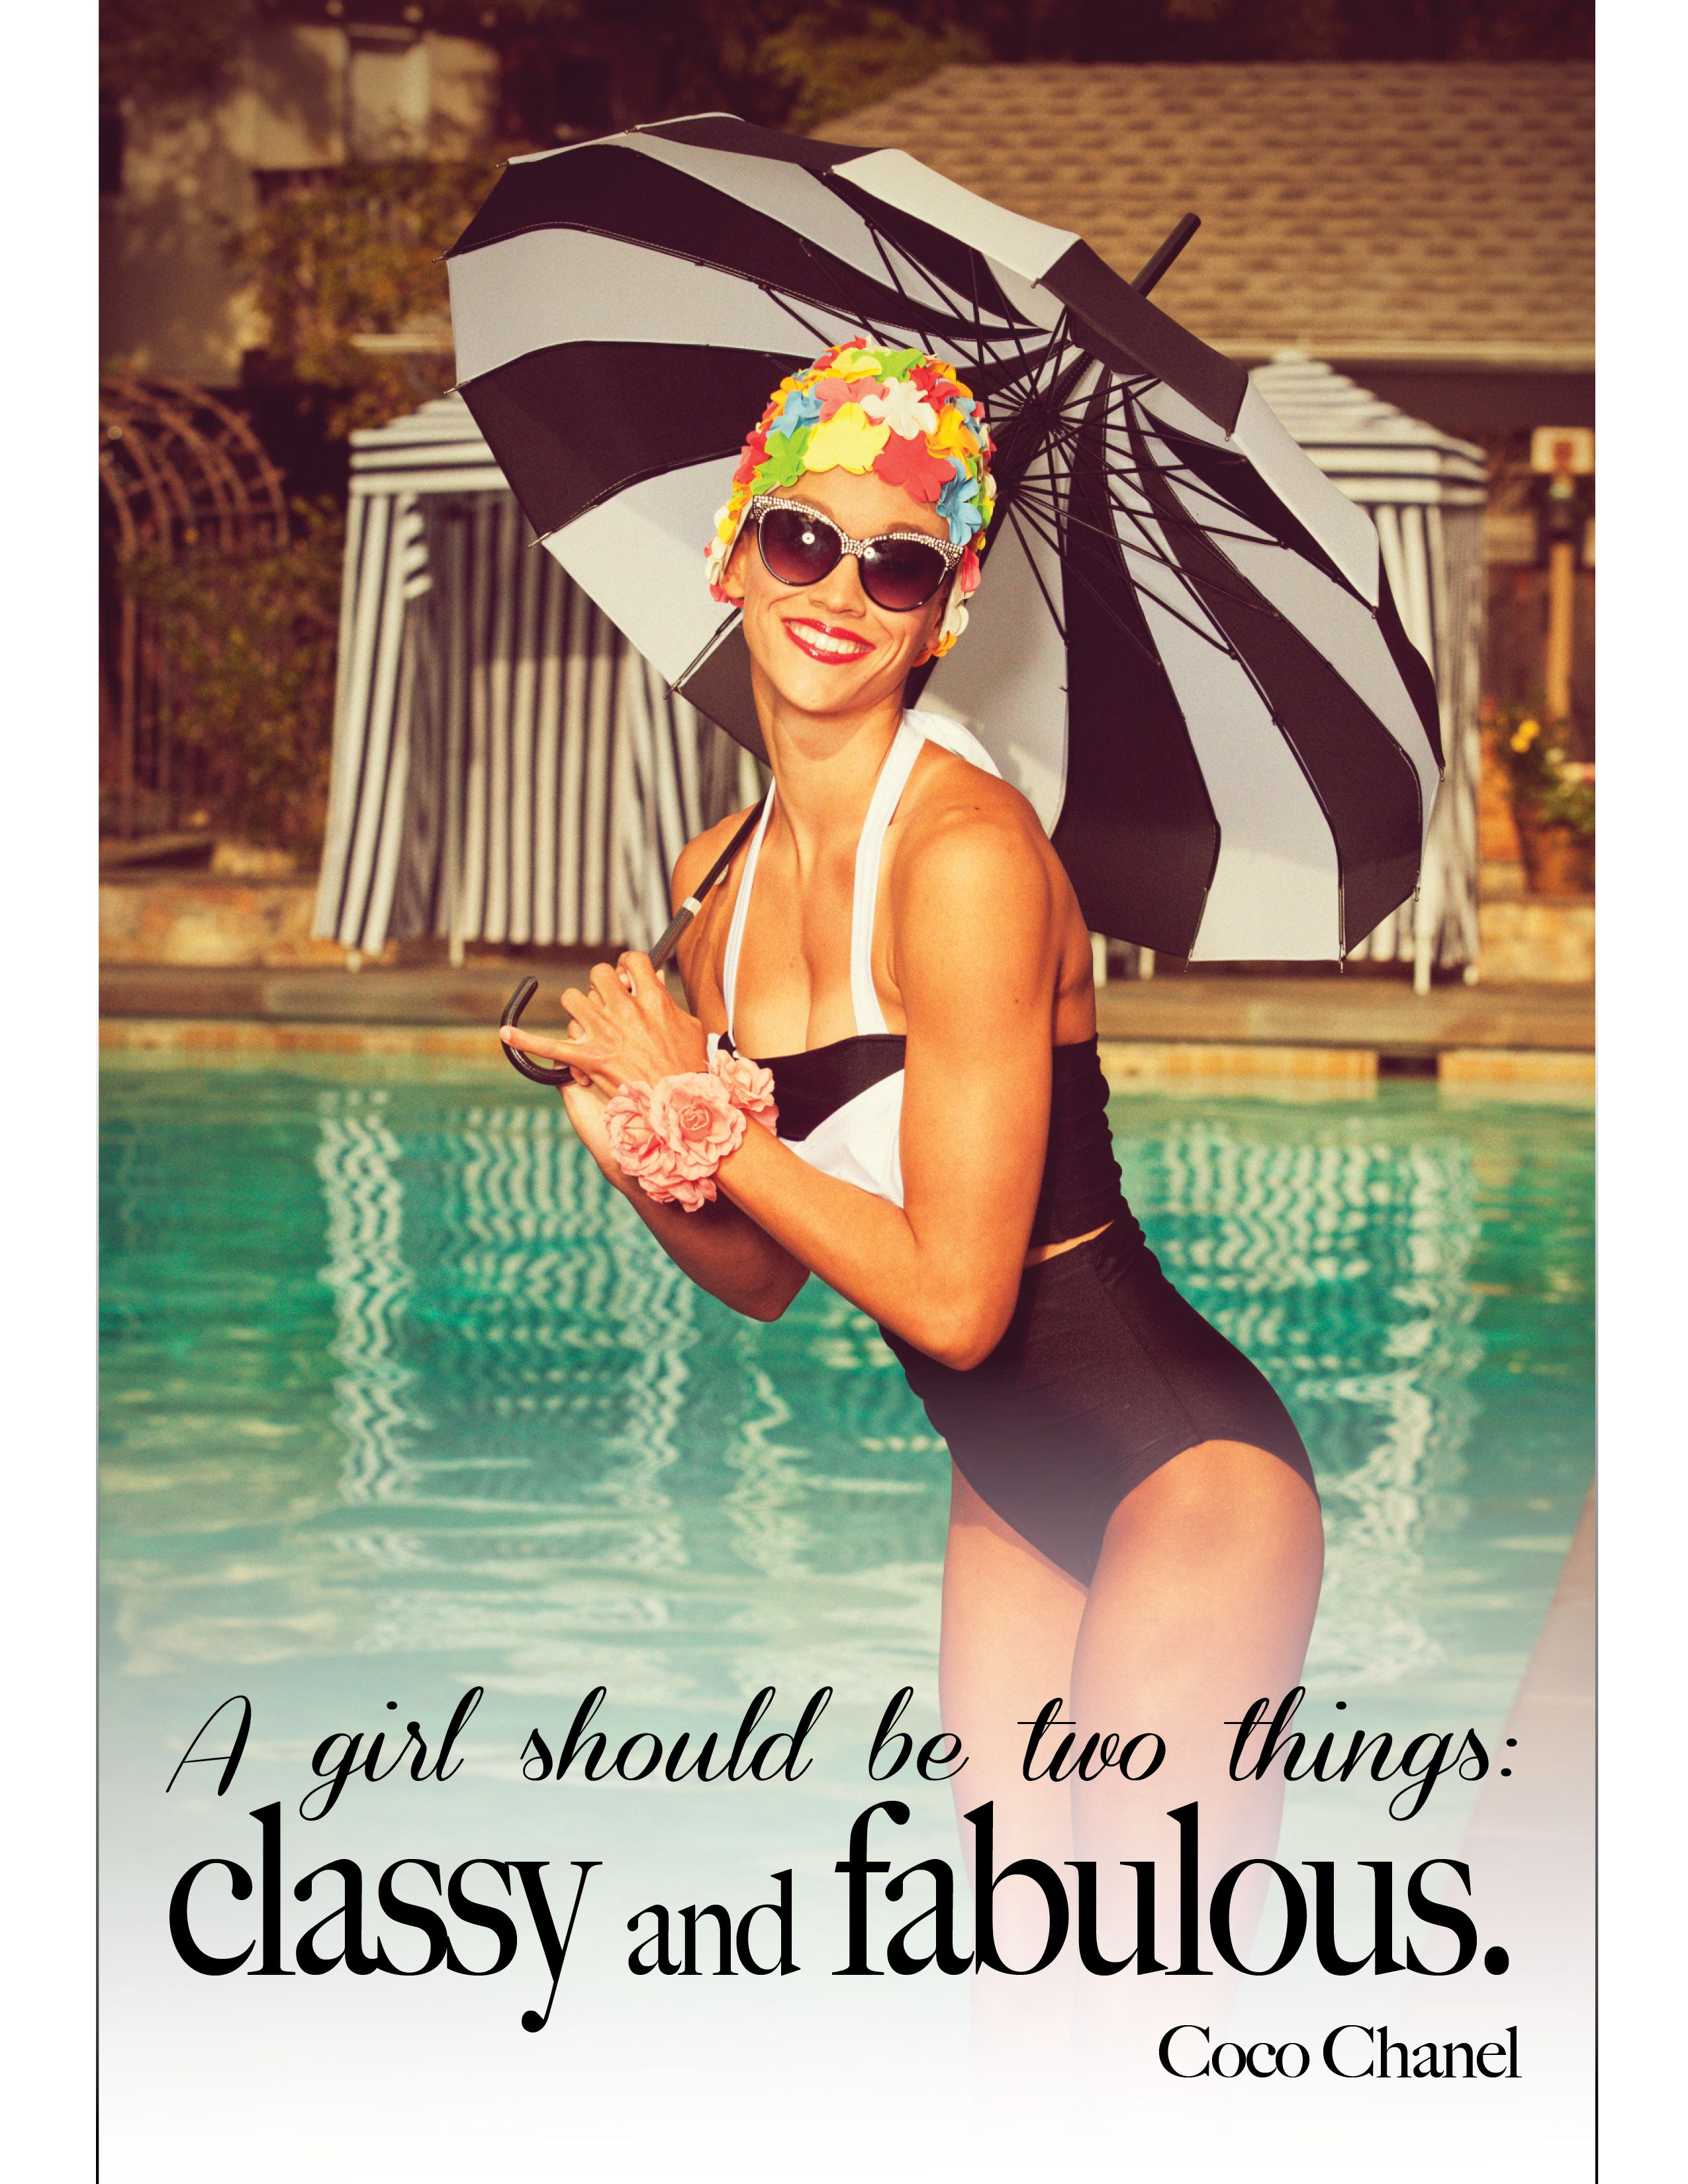 Pin By Brooke Messer On Story Of My Life Classy And Fabulous Fashion Quotes Vintage Soul